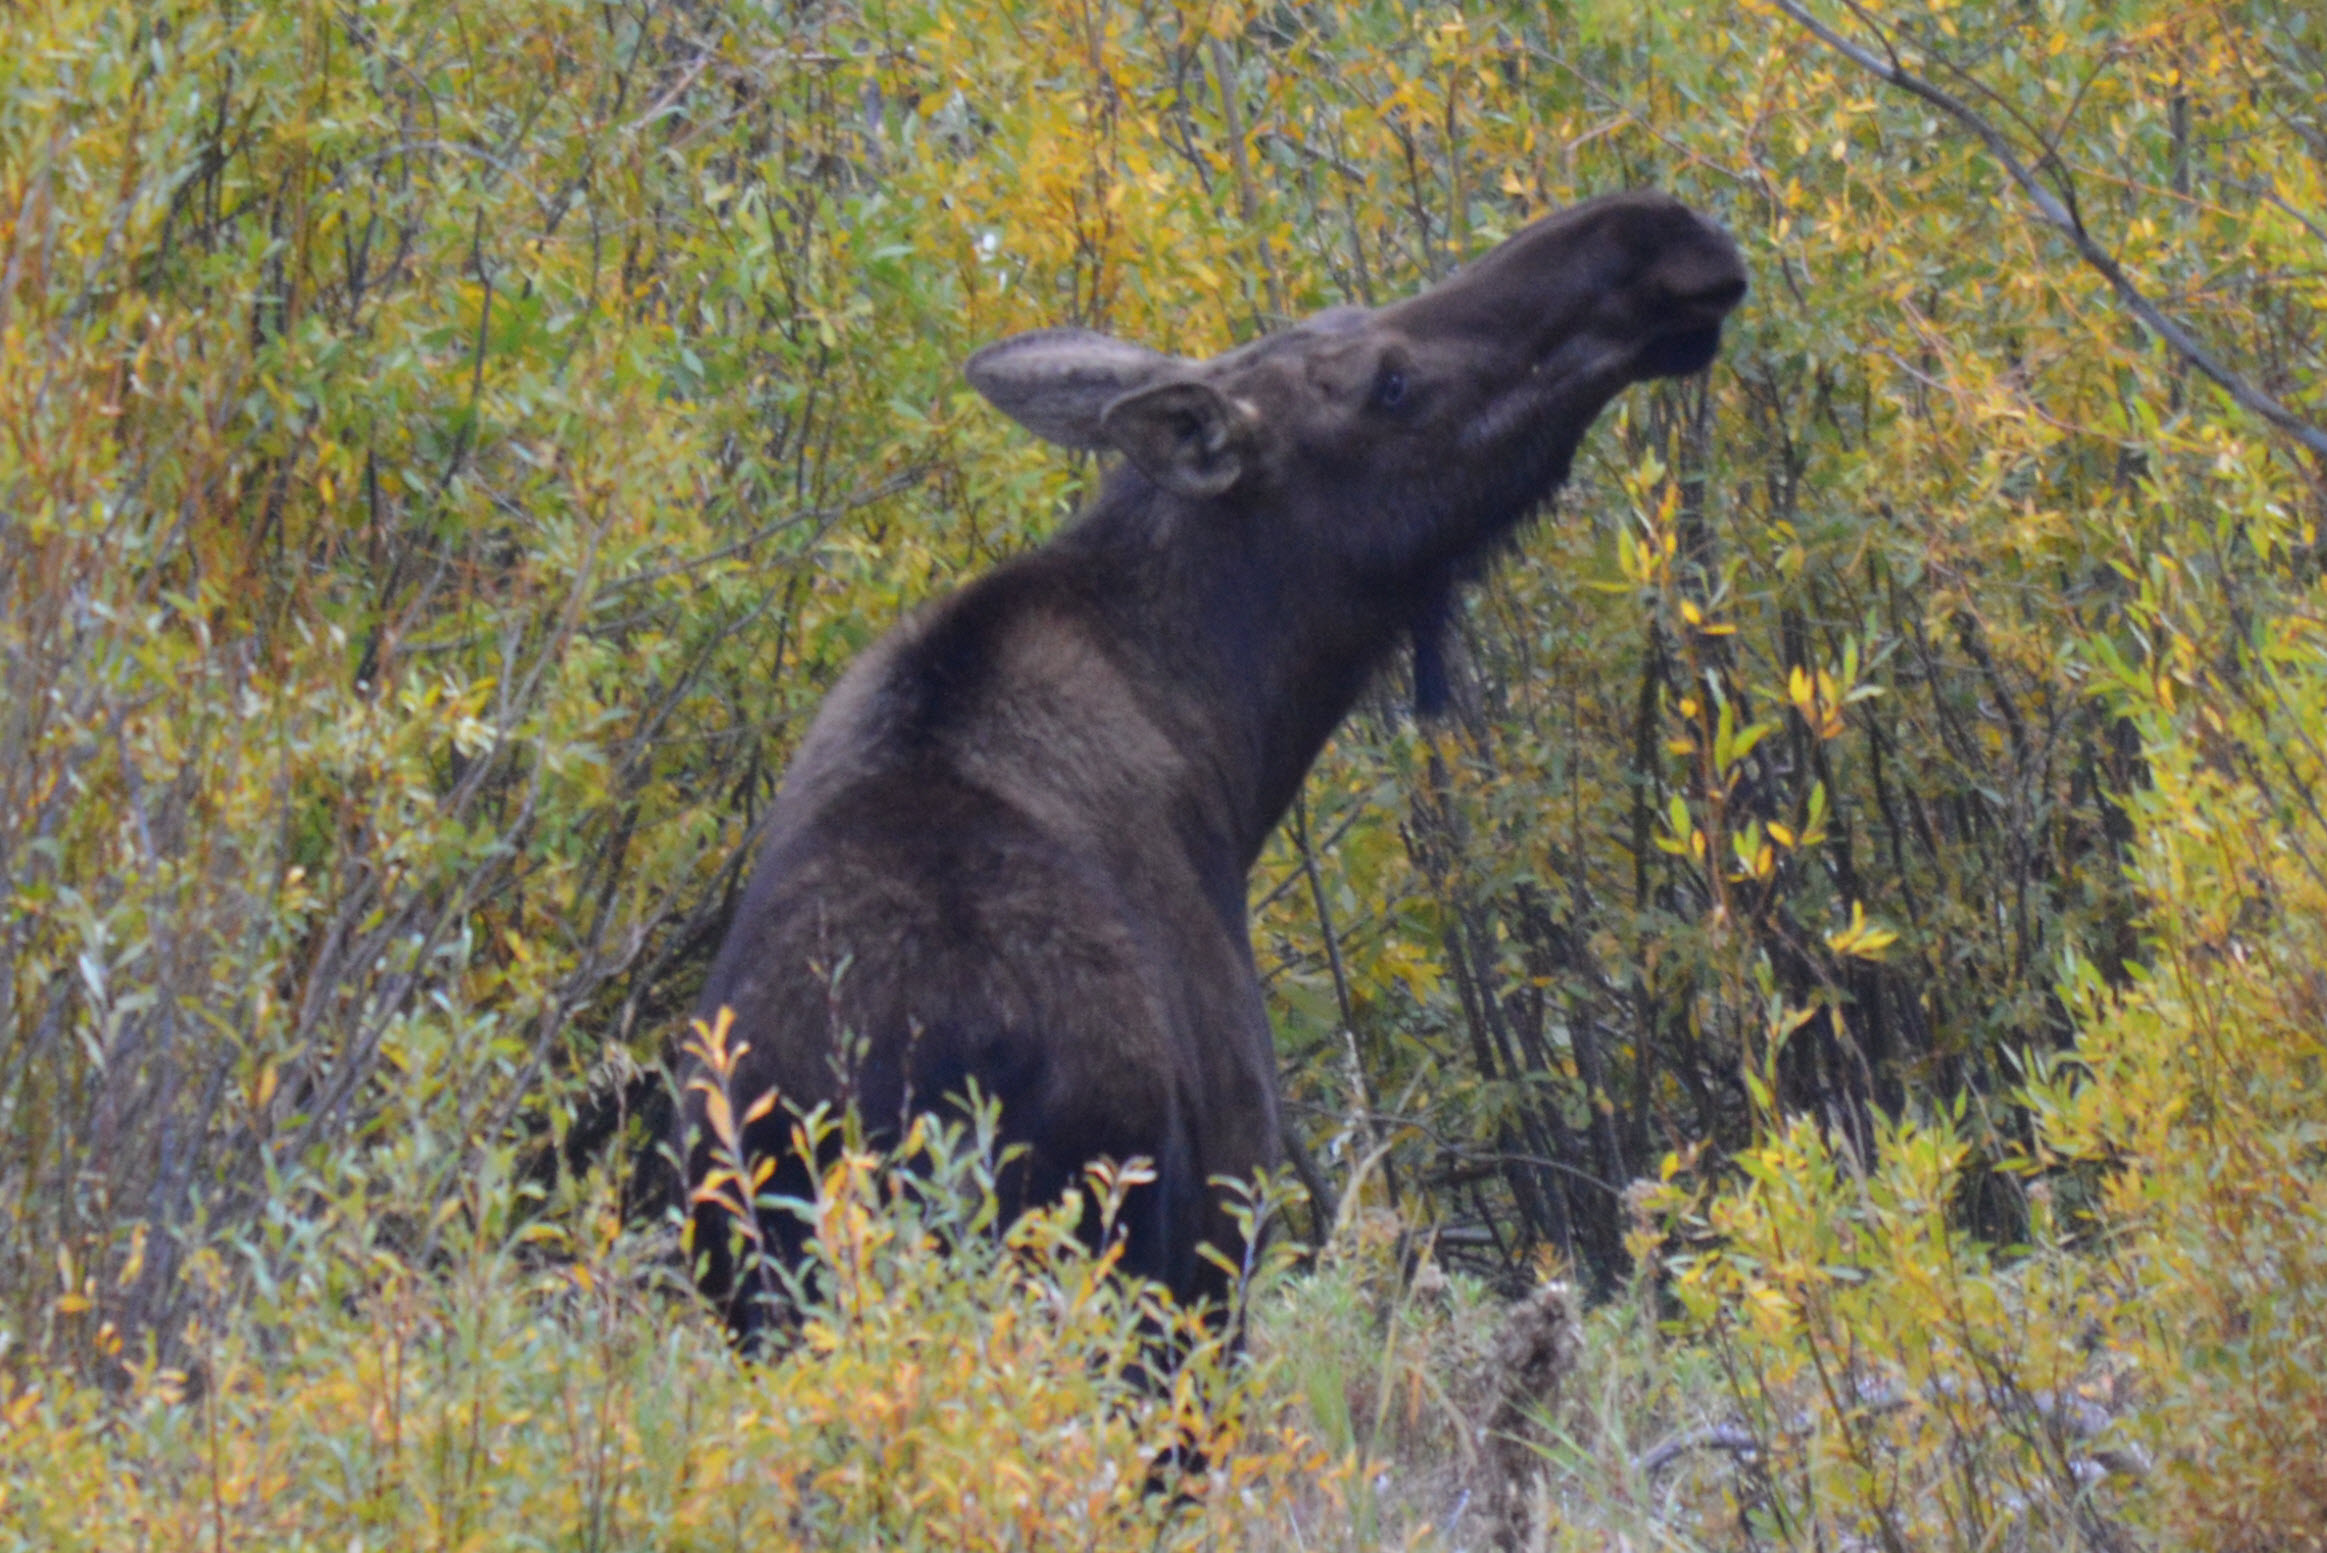 Moose cow outside Yellowstone near Waipiti, Wyoming, Sept 2012